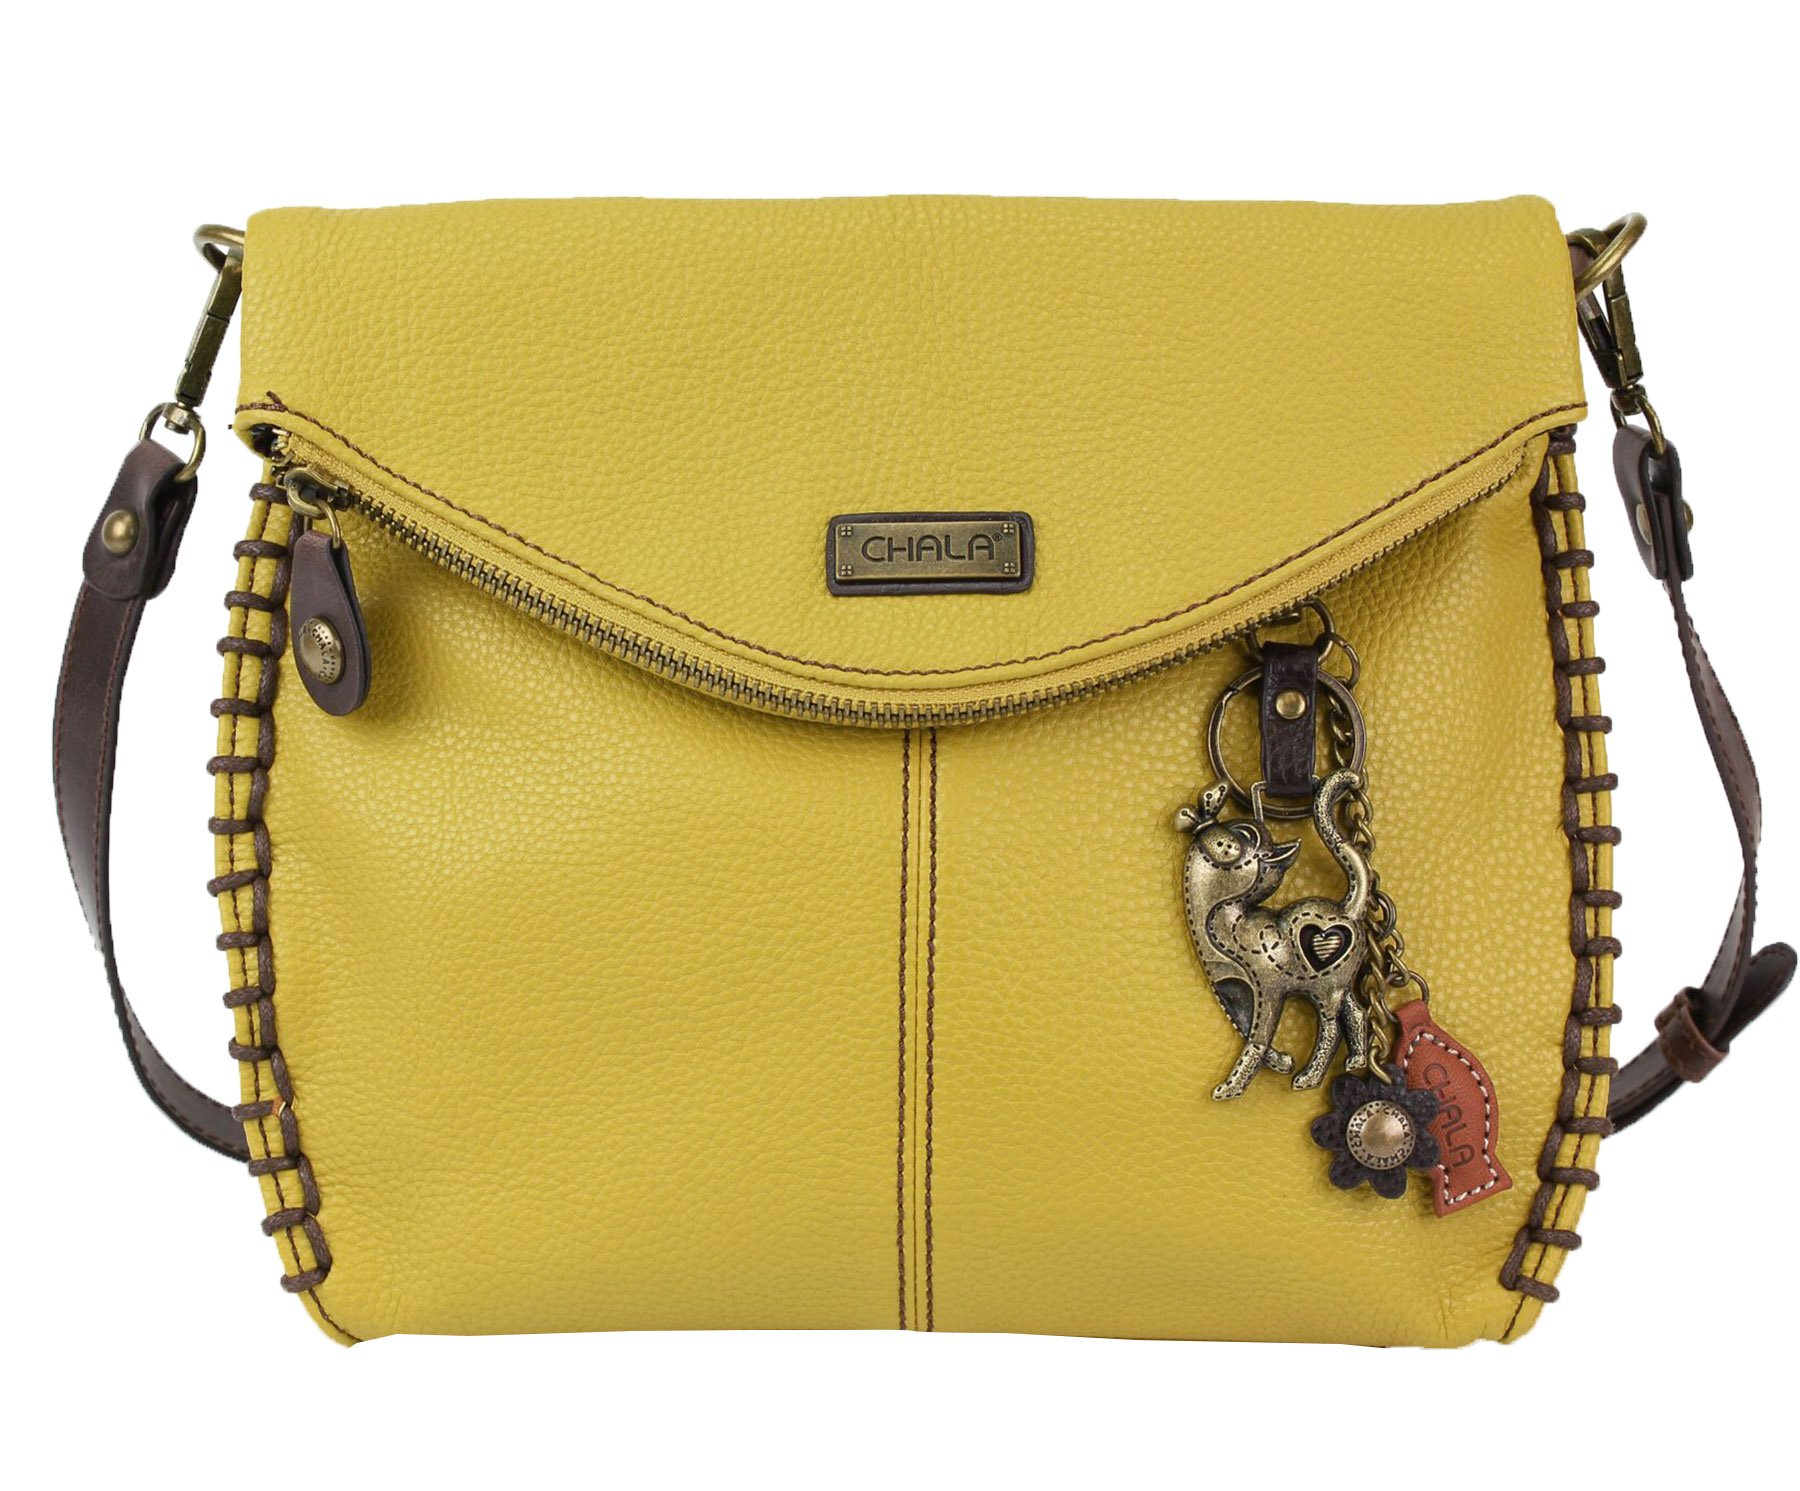 Chala Charming Crossbody Bag With Flap Top   Flap and Zipper Mustard Cross-Body Purse or Shoulder Handbag with Metal Chain - Slim Cat